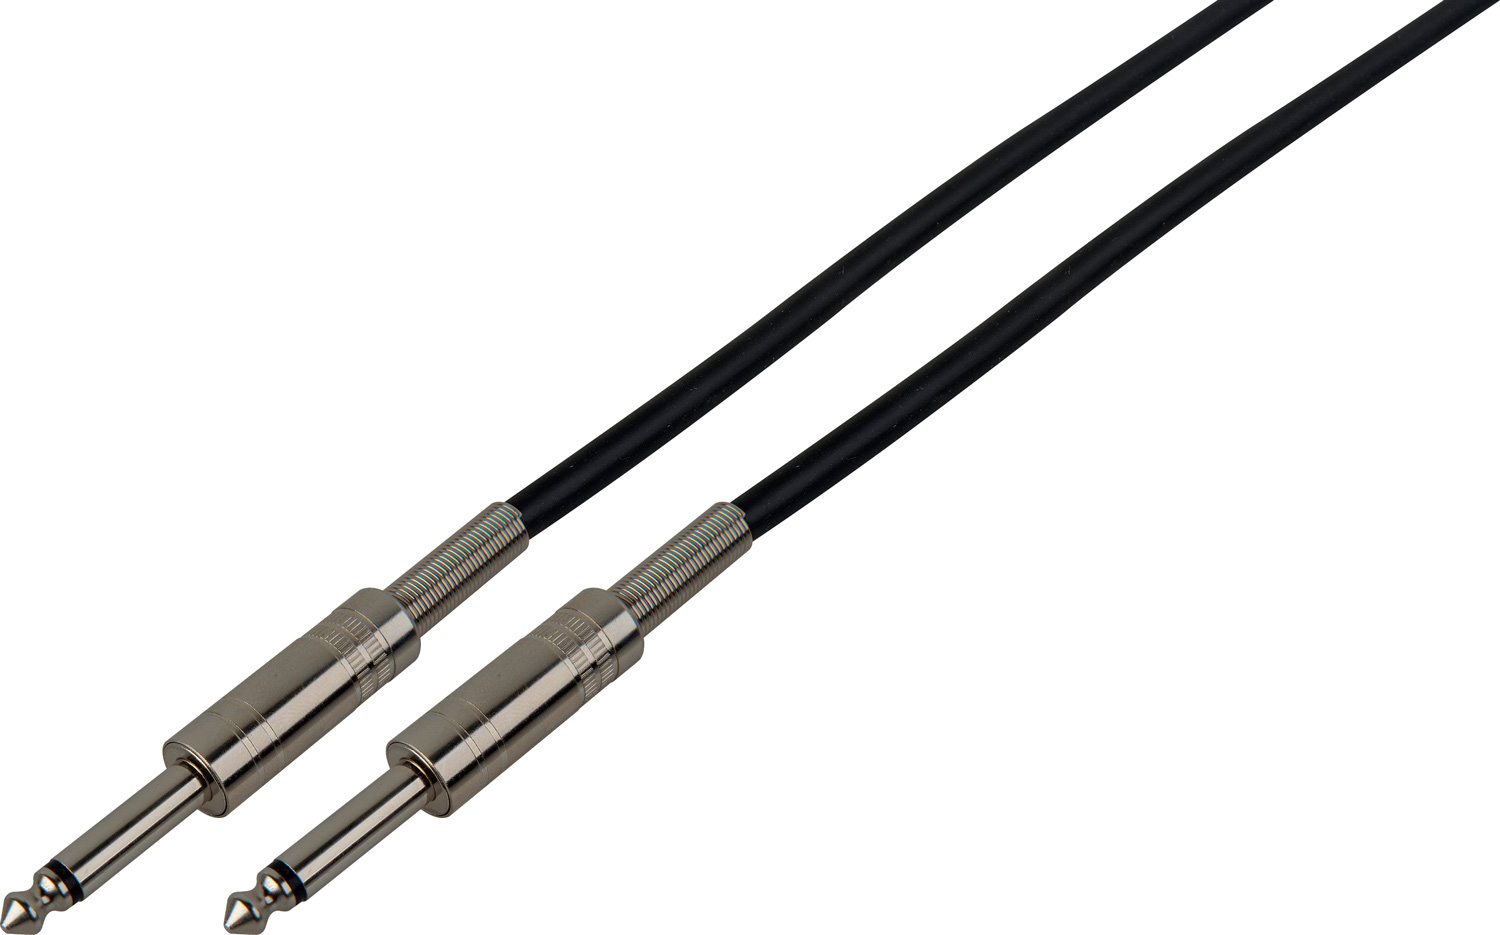 Tecnec 14 Gauge 1 4 Inch To 1 4 Inch Speaker Cable 10 Foot